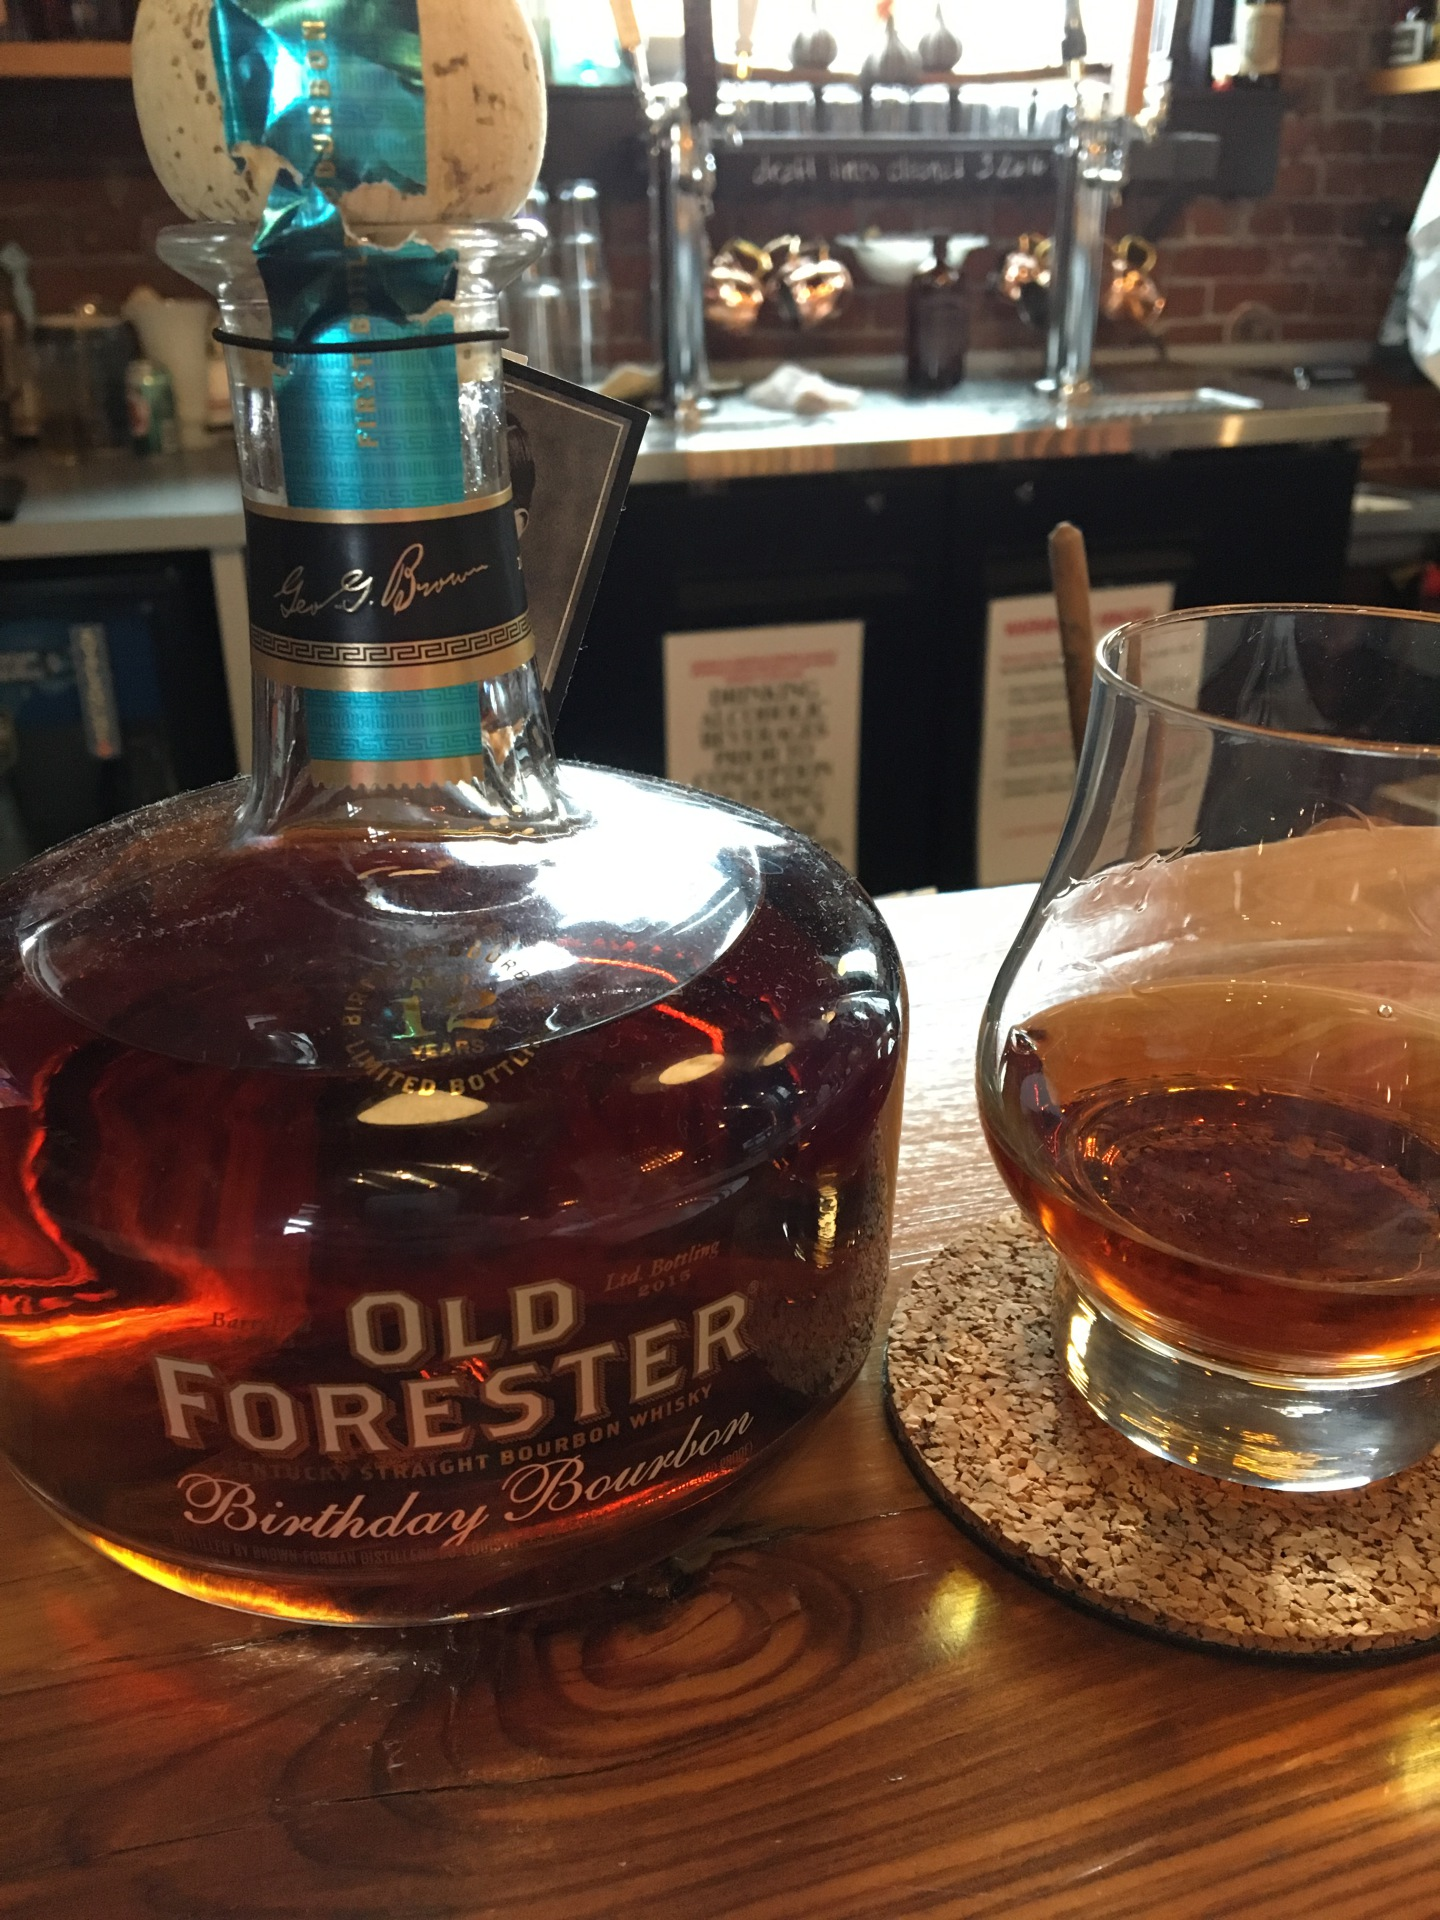 Old Forester Birthday Bourbon 2015